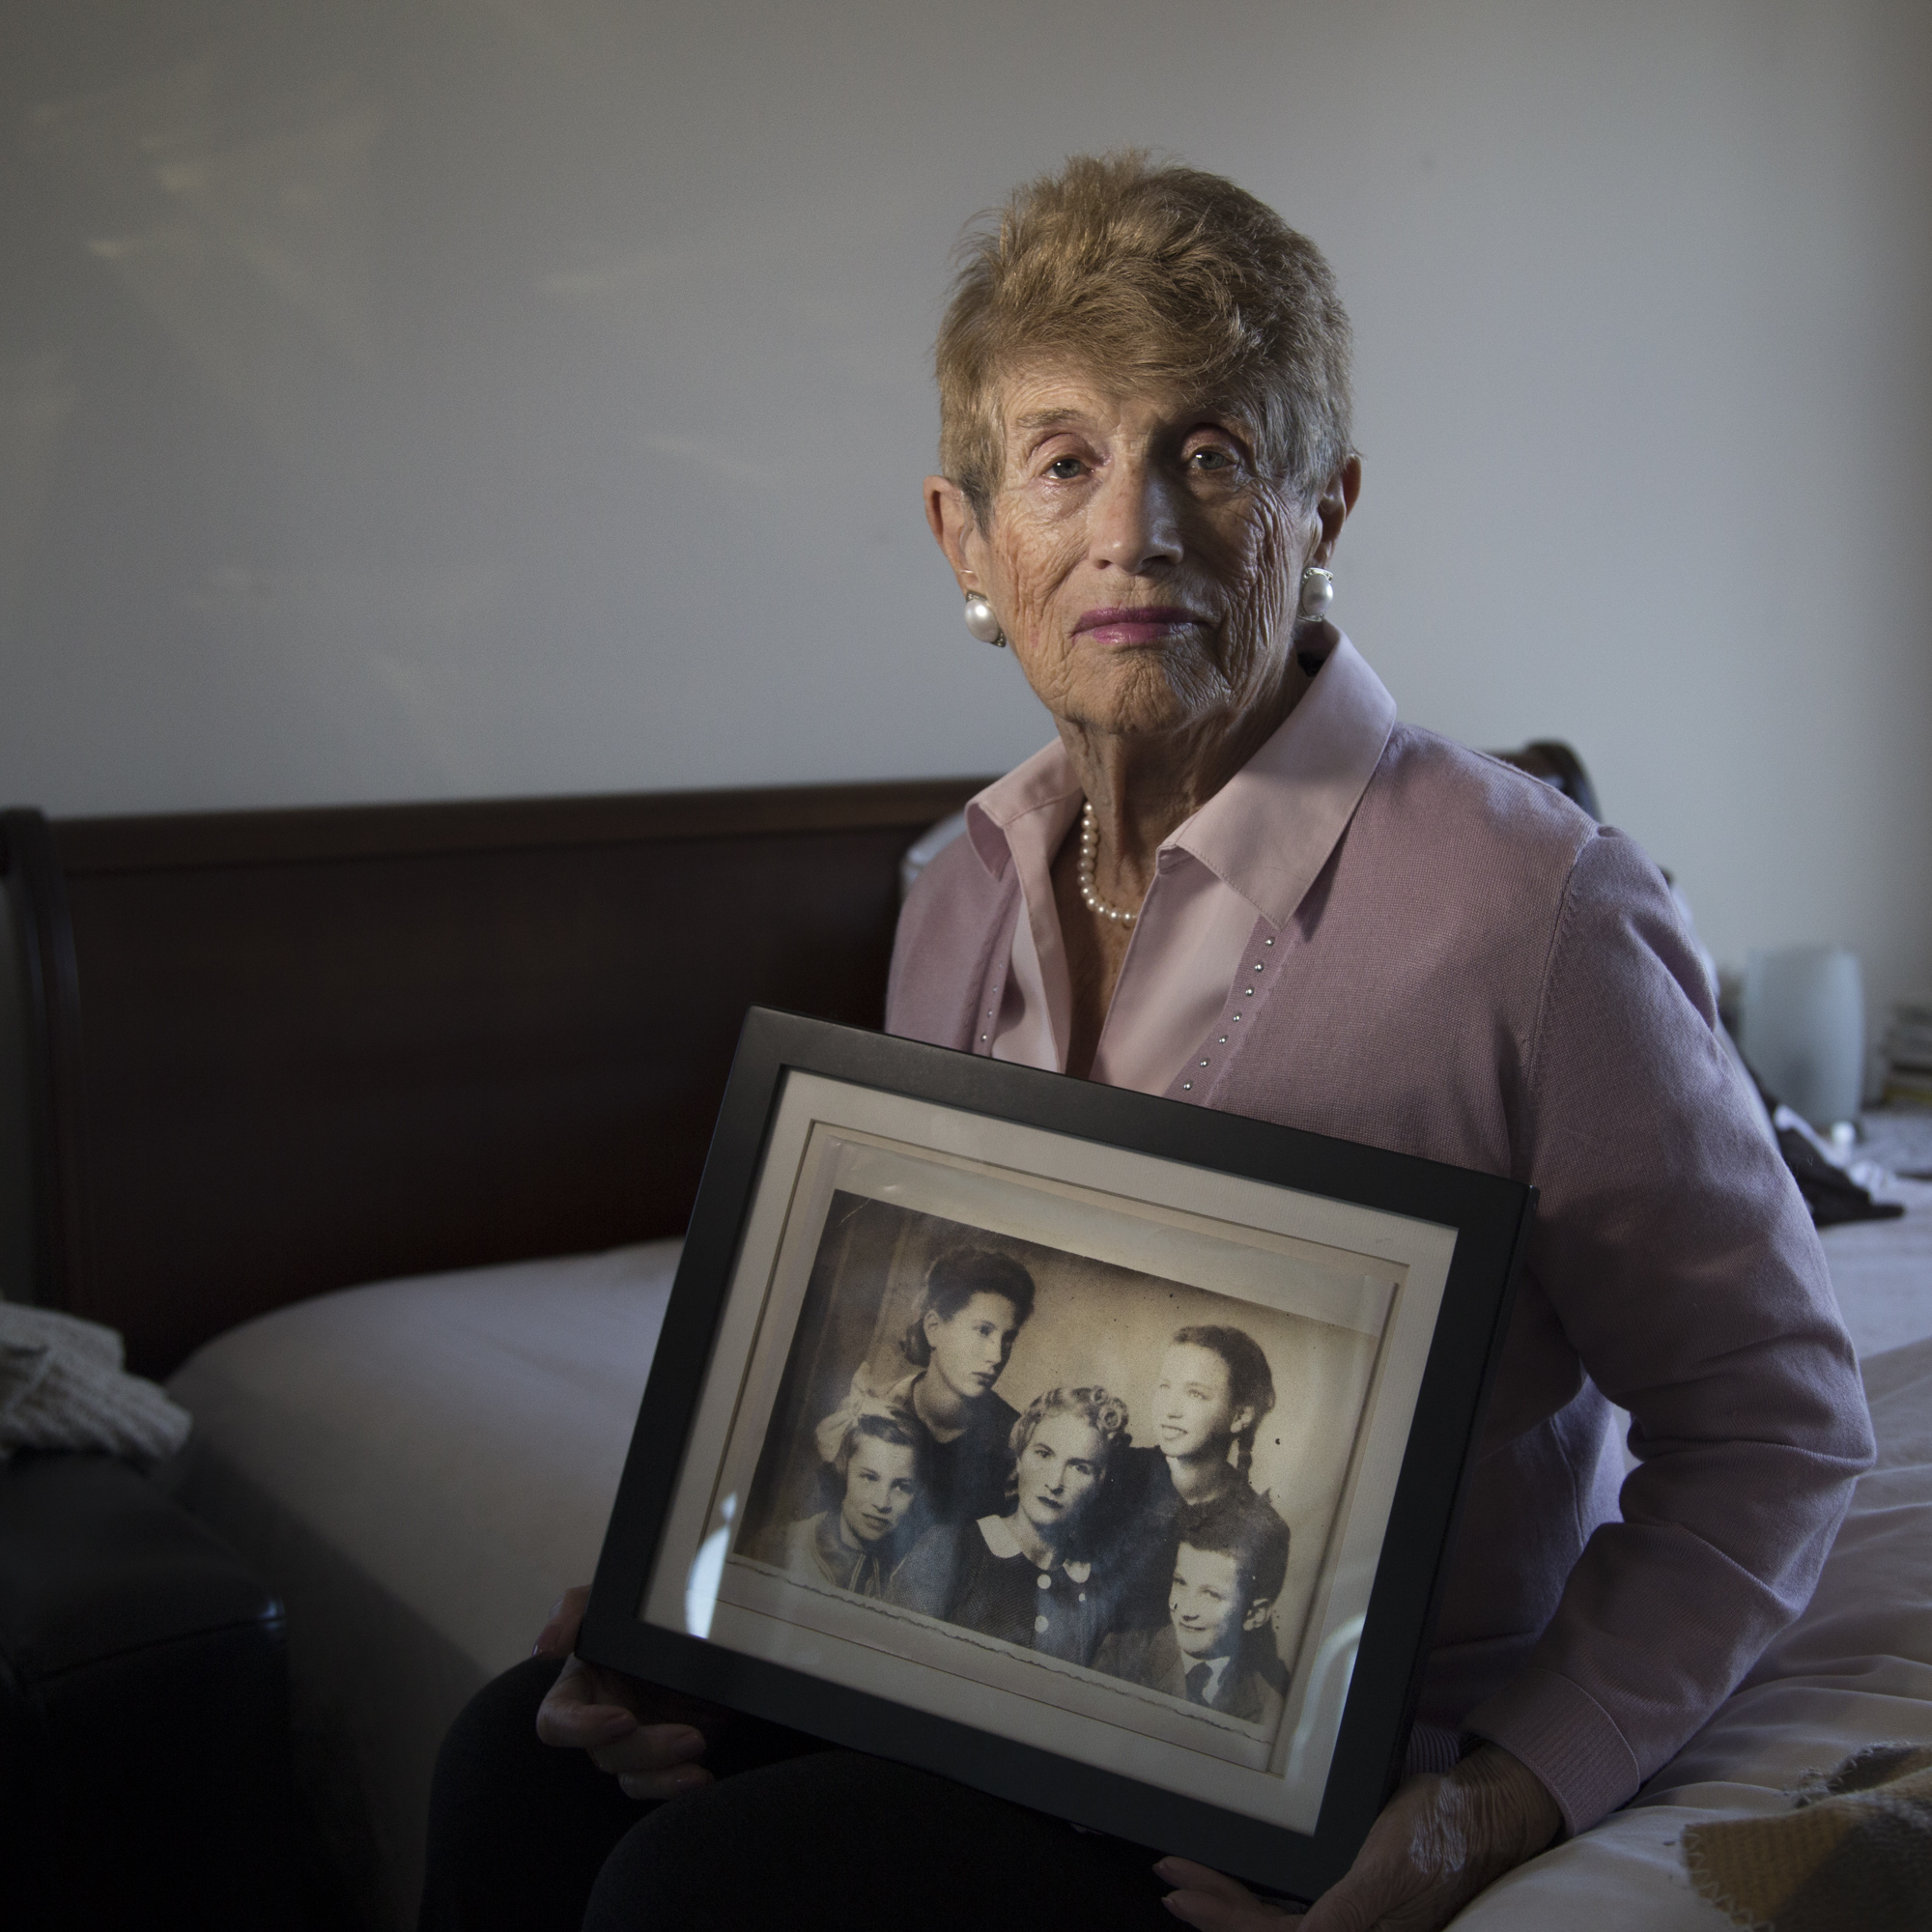 Holocaustsurvivor Rachel Roth holding the only photo she has of her mother and three siblings. They were all killed in Treblinka after living in the Warsaw Ghetto in Poland.